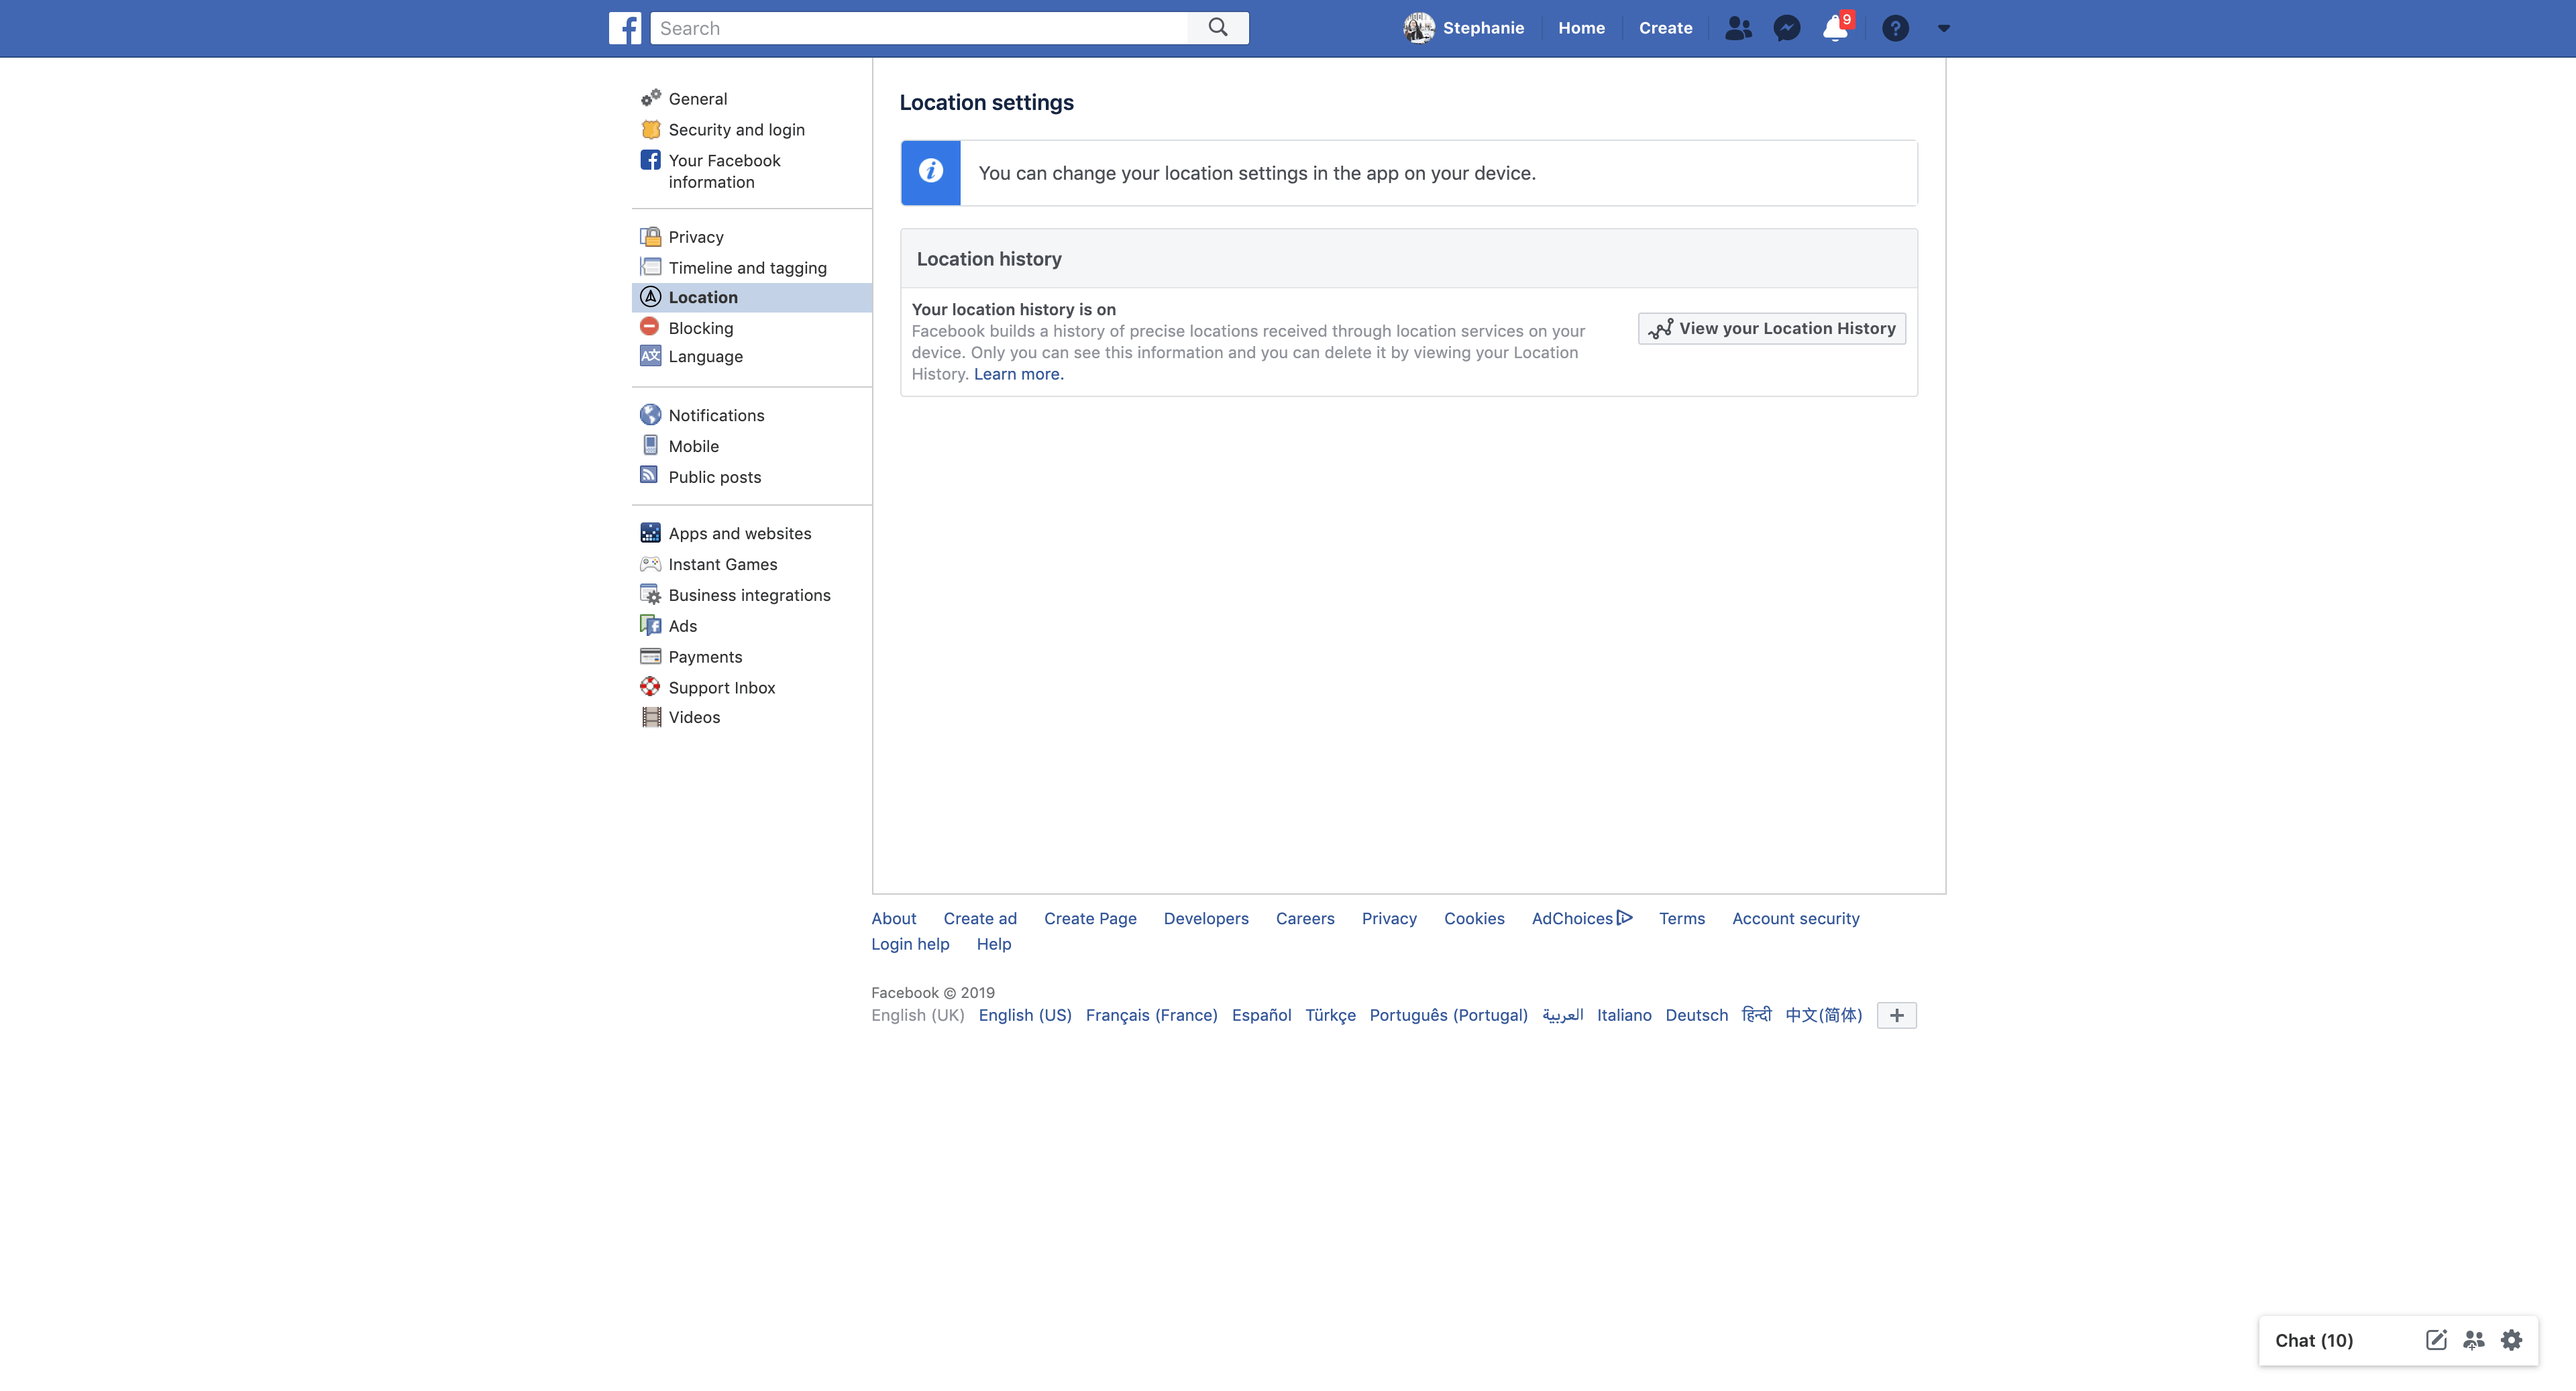 Location Settings by Facebook